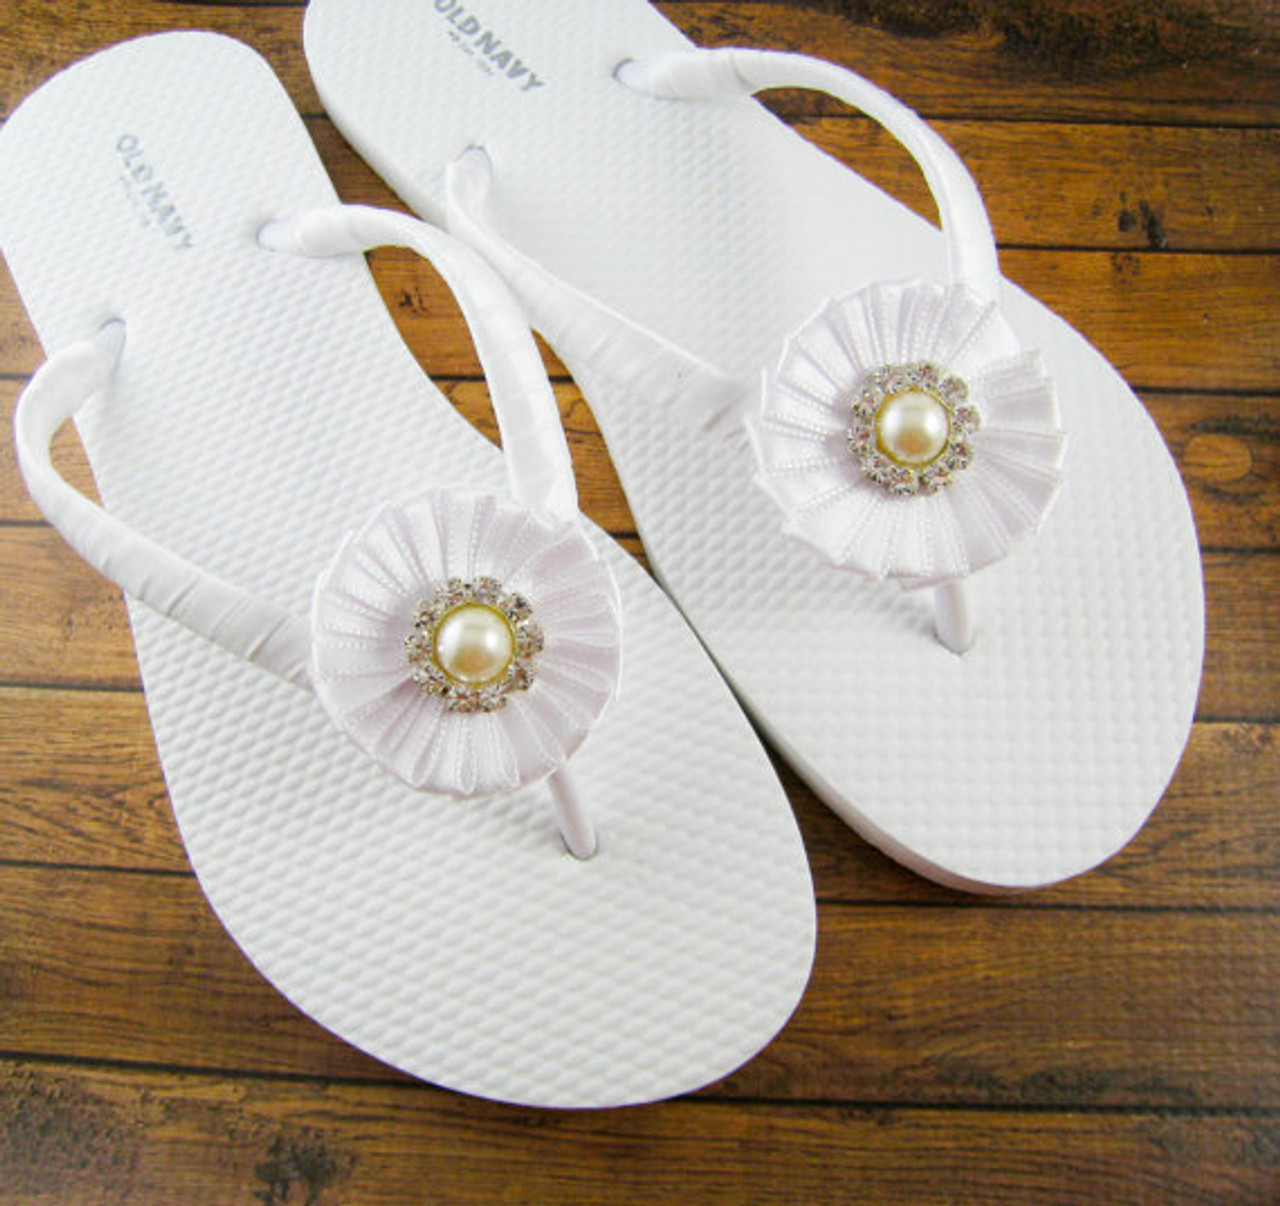 f34a91436e6c Bridal Flip Flops - White and off white   Wedding Flip Flops   Bridesmaid